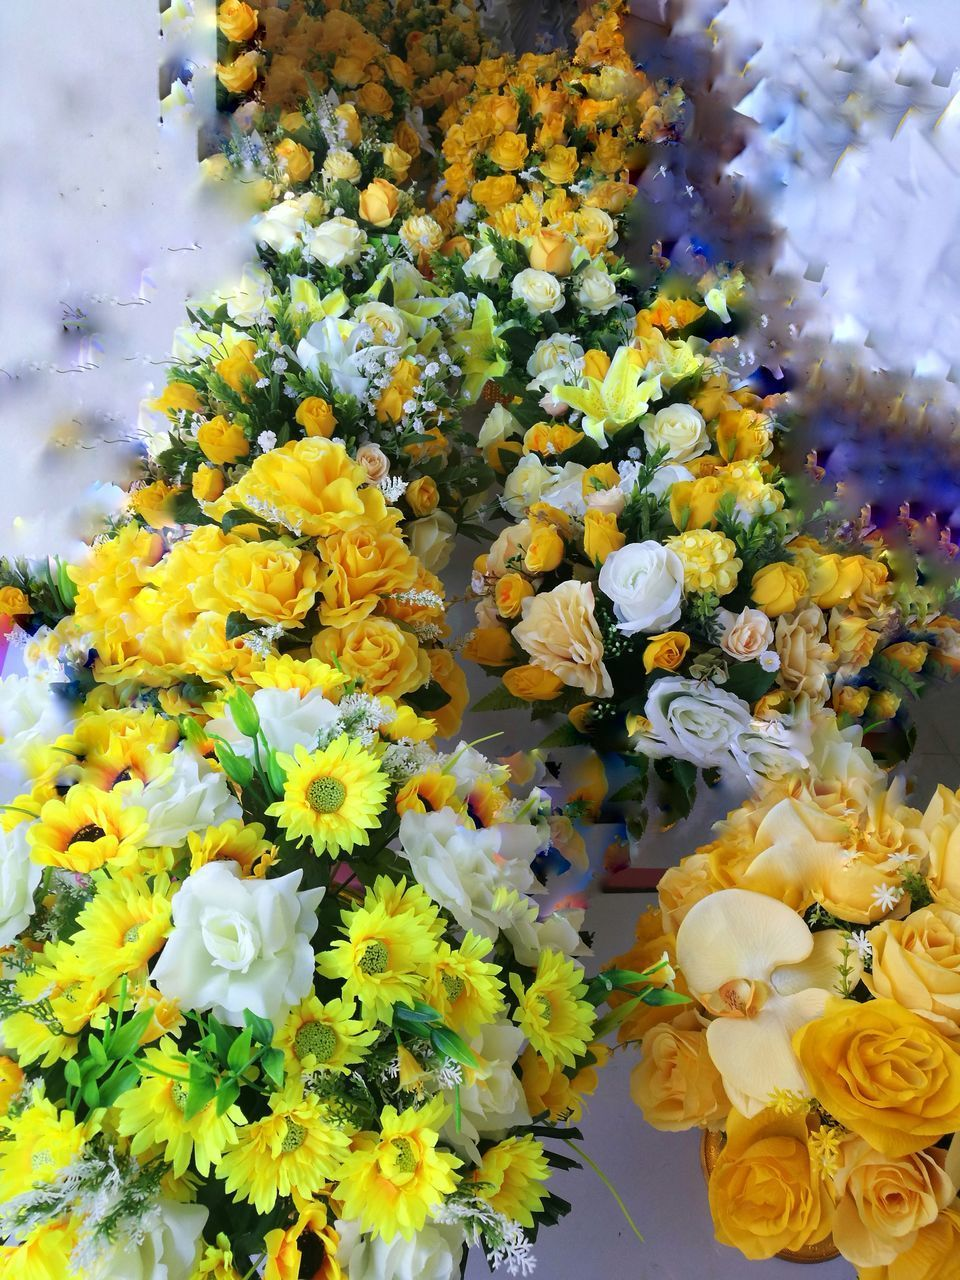 flowering plant, flower, vulnerability, fragility, plant, beauty in nature, freshness, yellow, flower head, inflorescence, nature, petal, close-up, multi colored, no people, flower arrangement, bouquet, day, outdoors, bunch of flowers, flower market, lantana